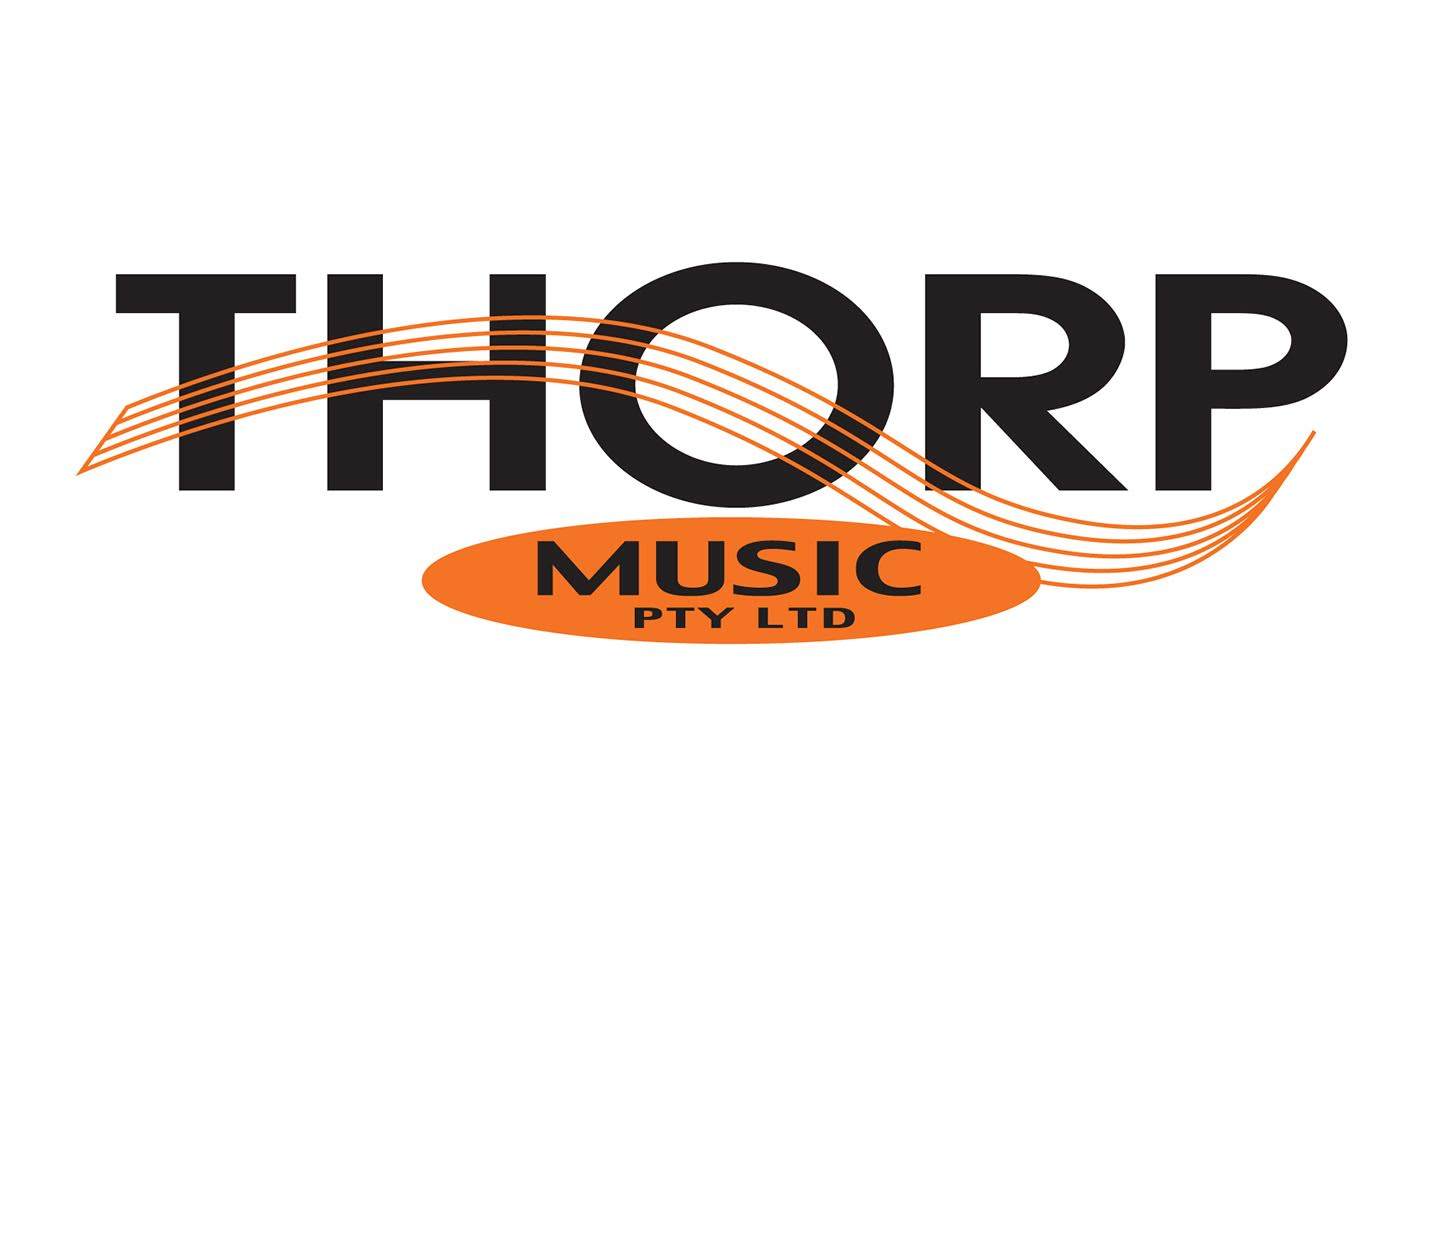 Thorp Music